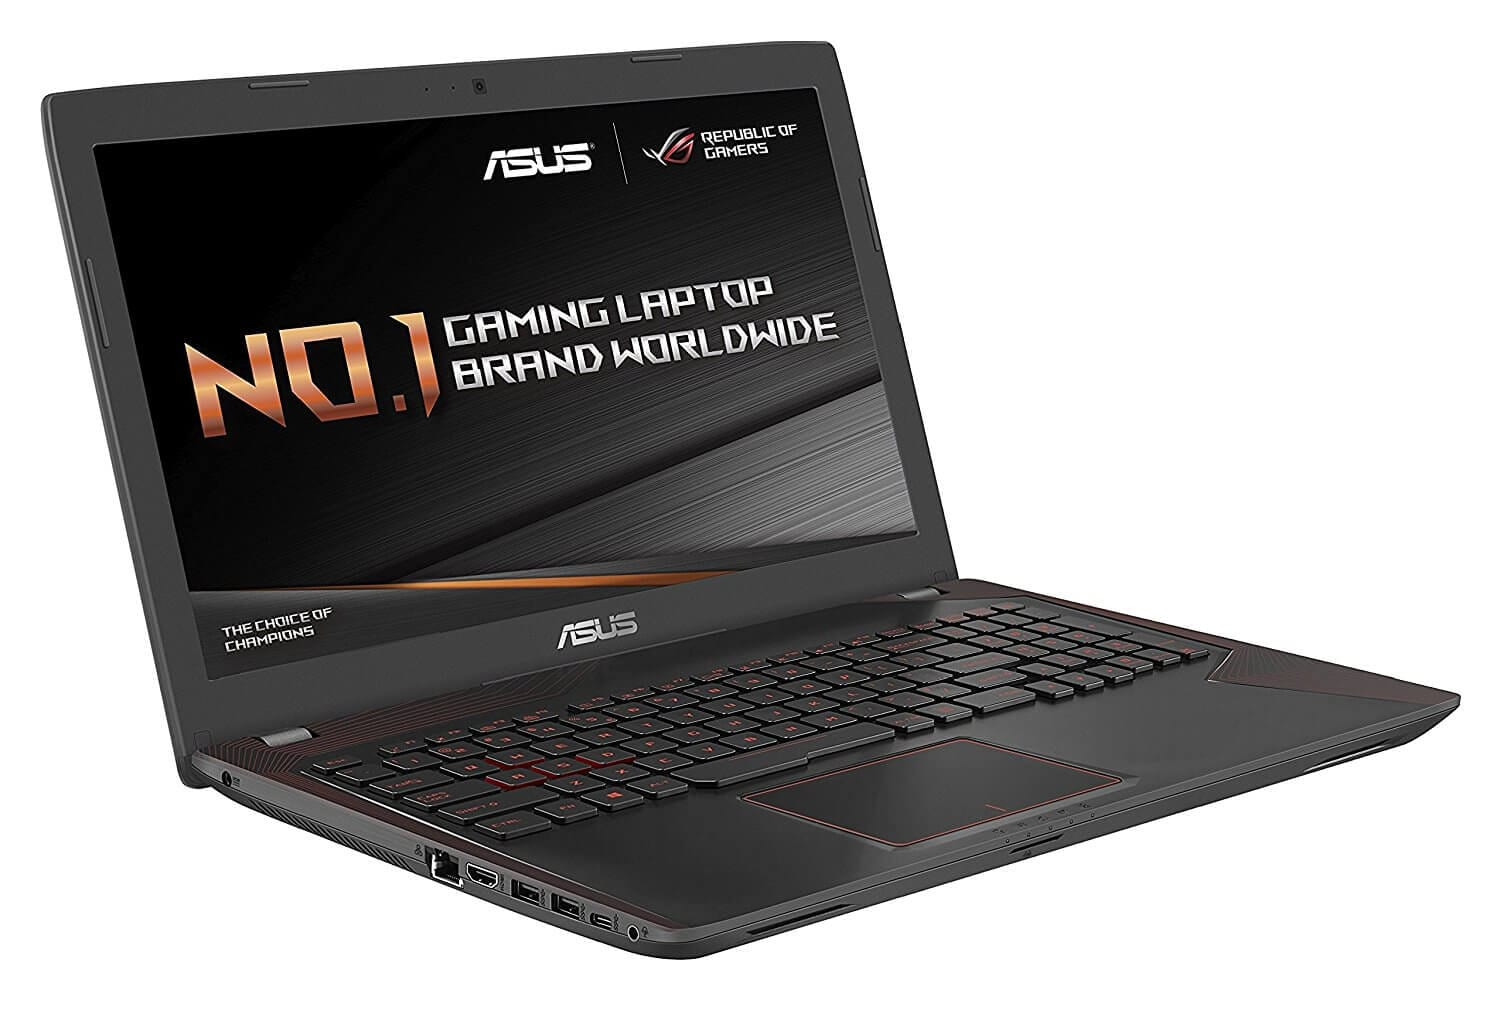 ASUS ROG Strix ZX553VD-DM640T 15.6 inch FHD  Cheap Gaming Laptop with NVIDIA GTX1050 4GB GDDR5 Graphics